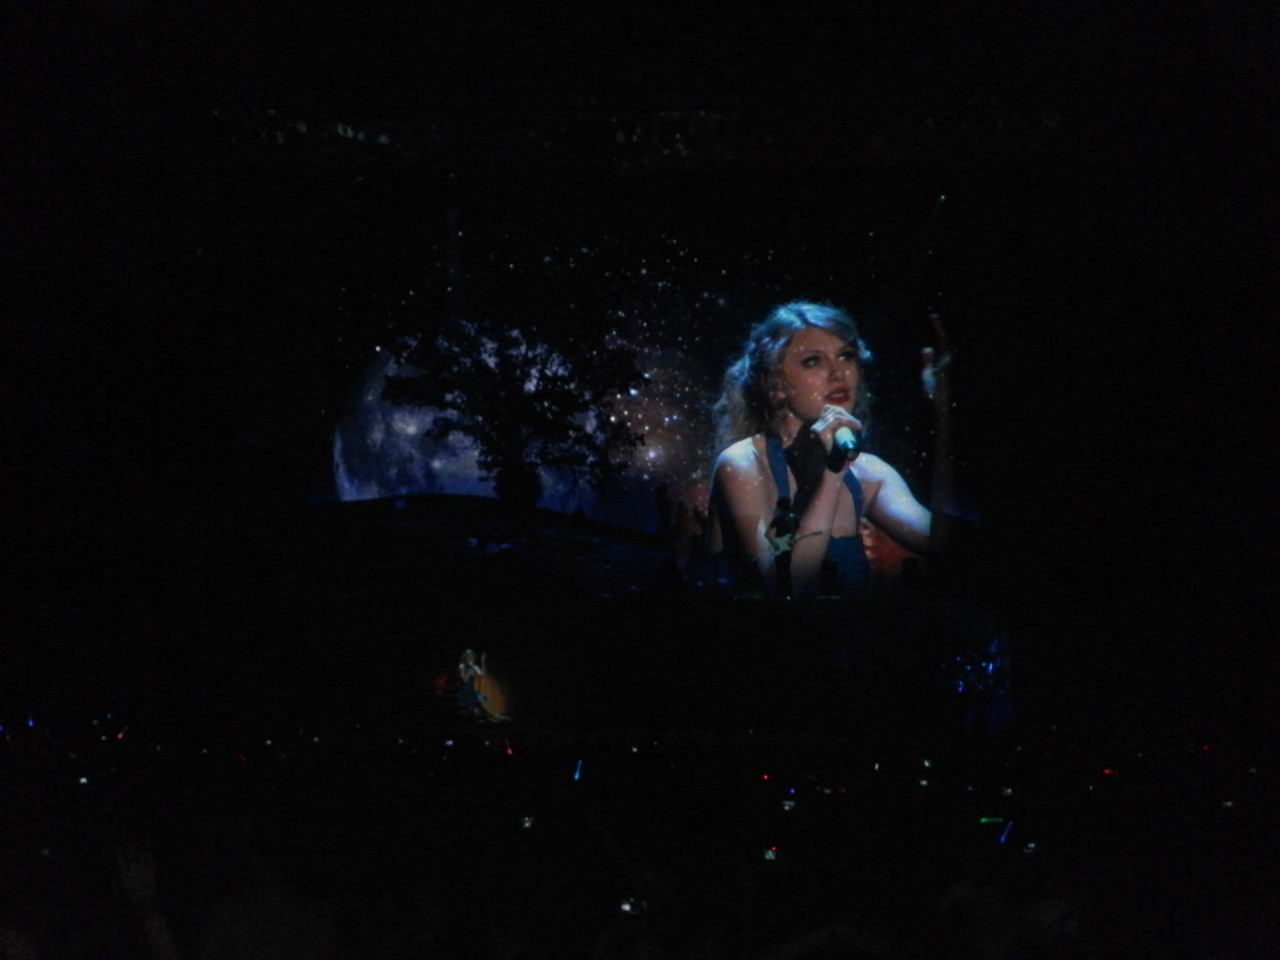 Happy Birthday Taylor Swift. I was Enchanted to meet you the 30th of March 2011 in London! You are amazing!